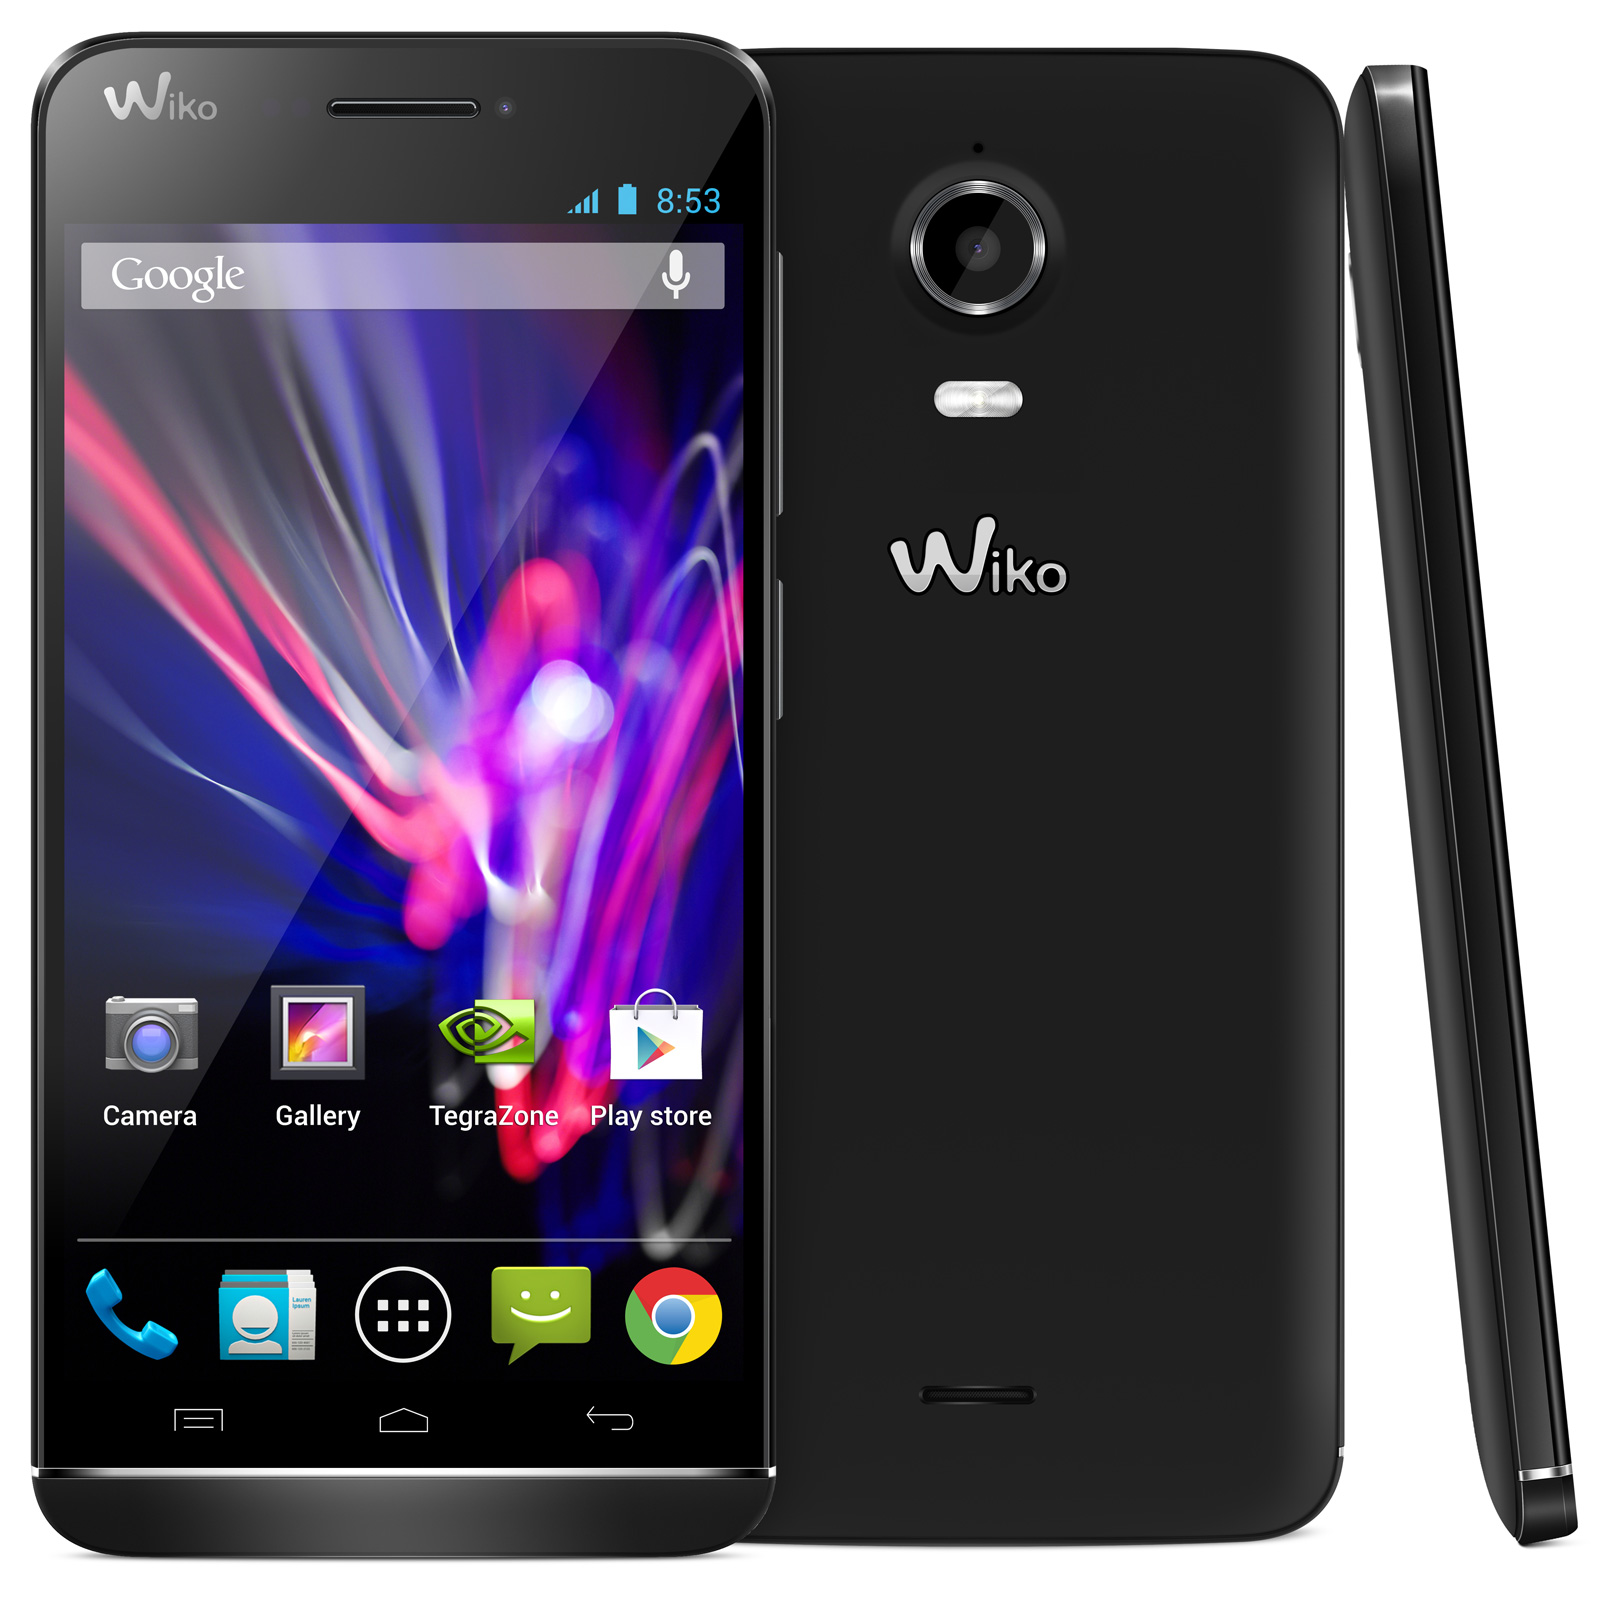 wiko wax noir mobile smartphone wiko sur ldlc. Black Bedroom Furniture Sets. Home Design Ideas